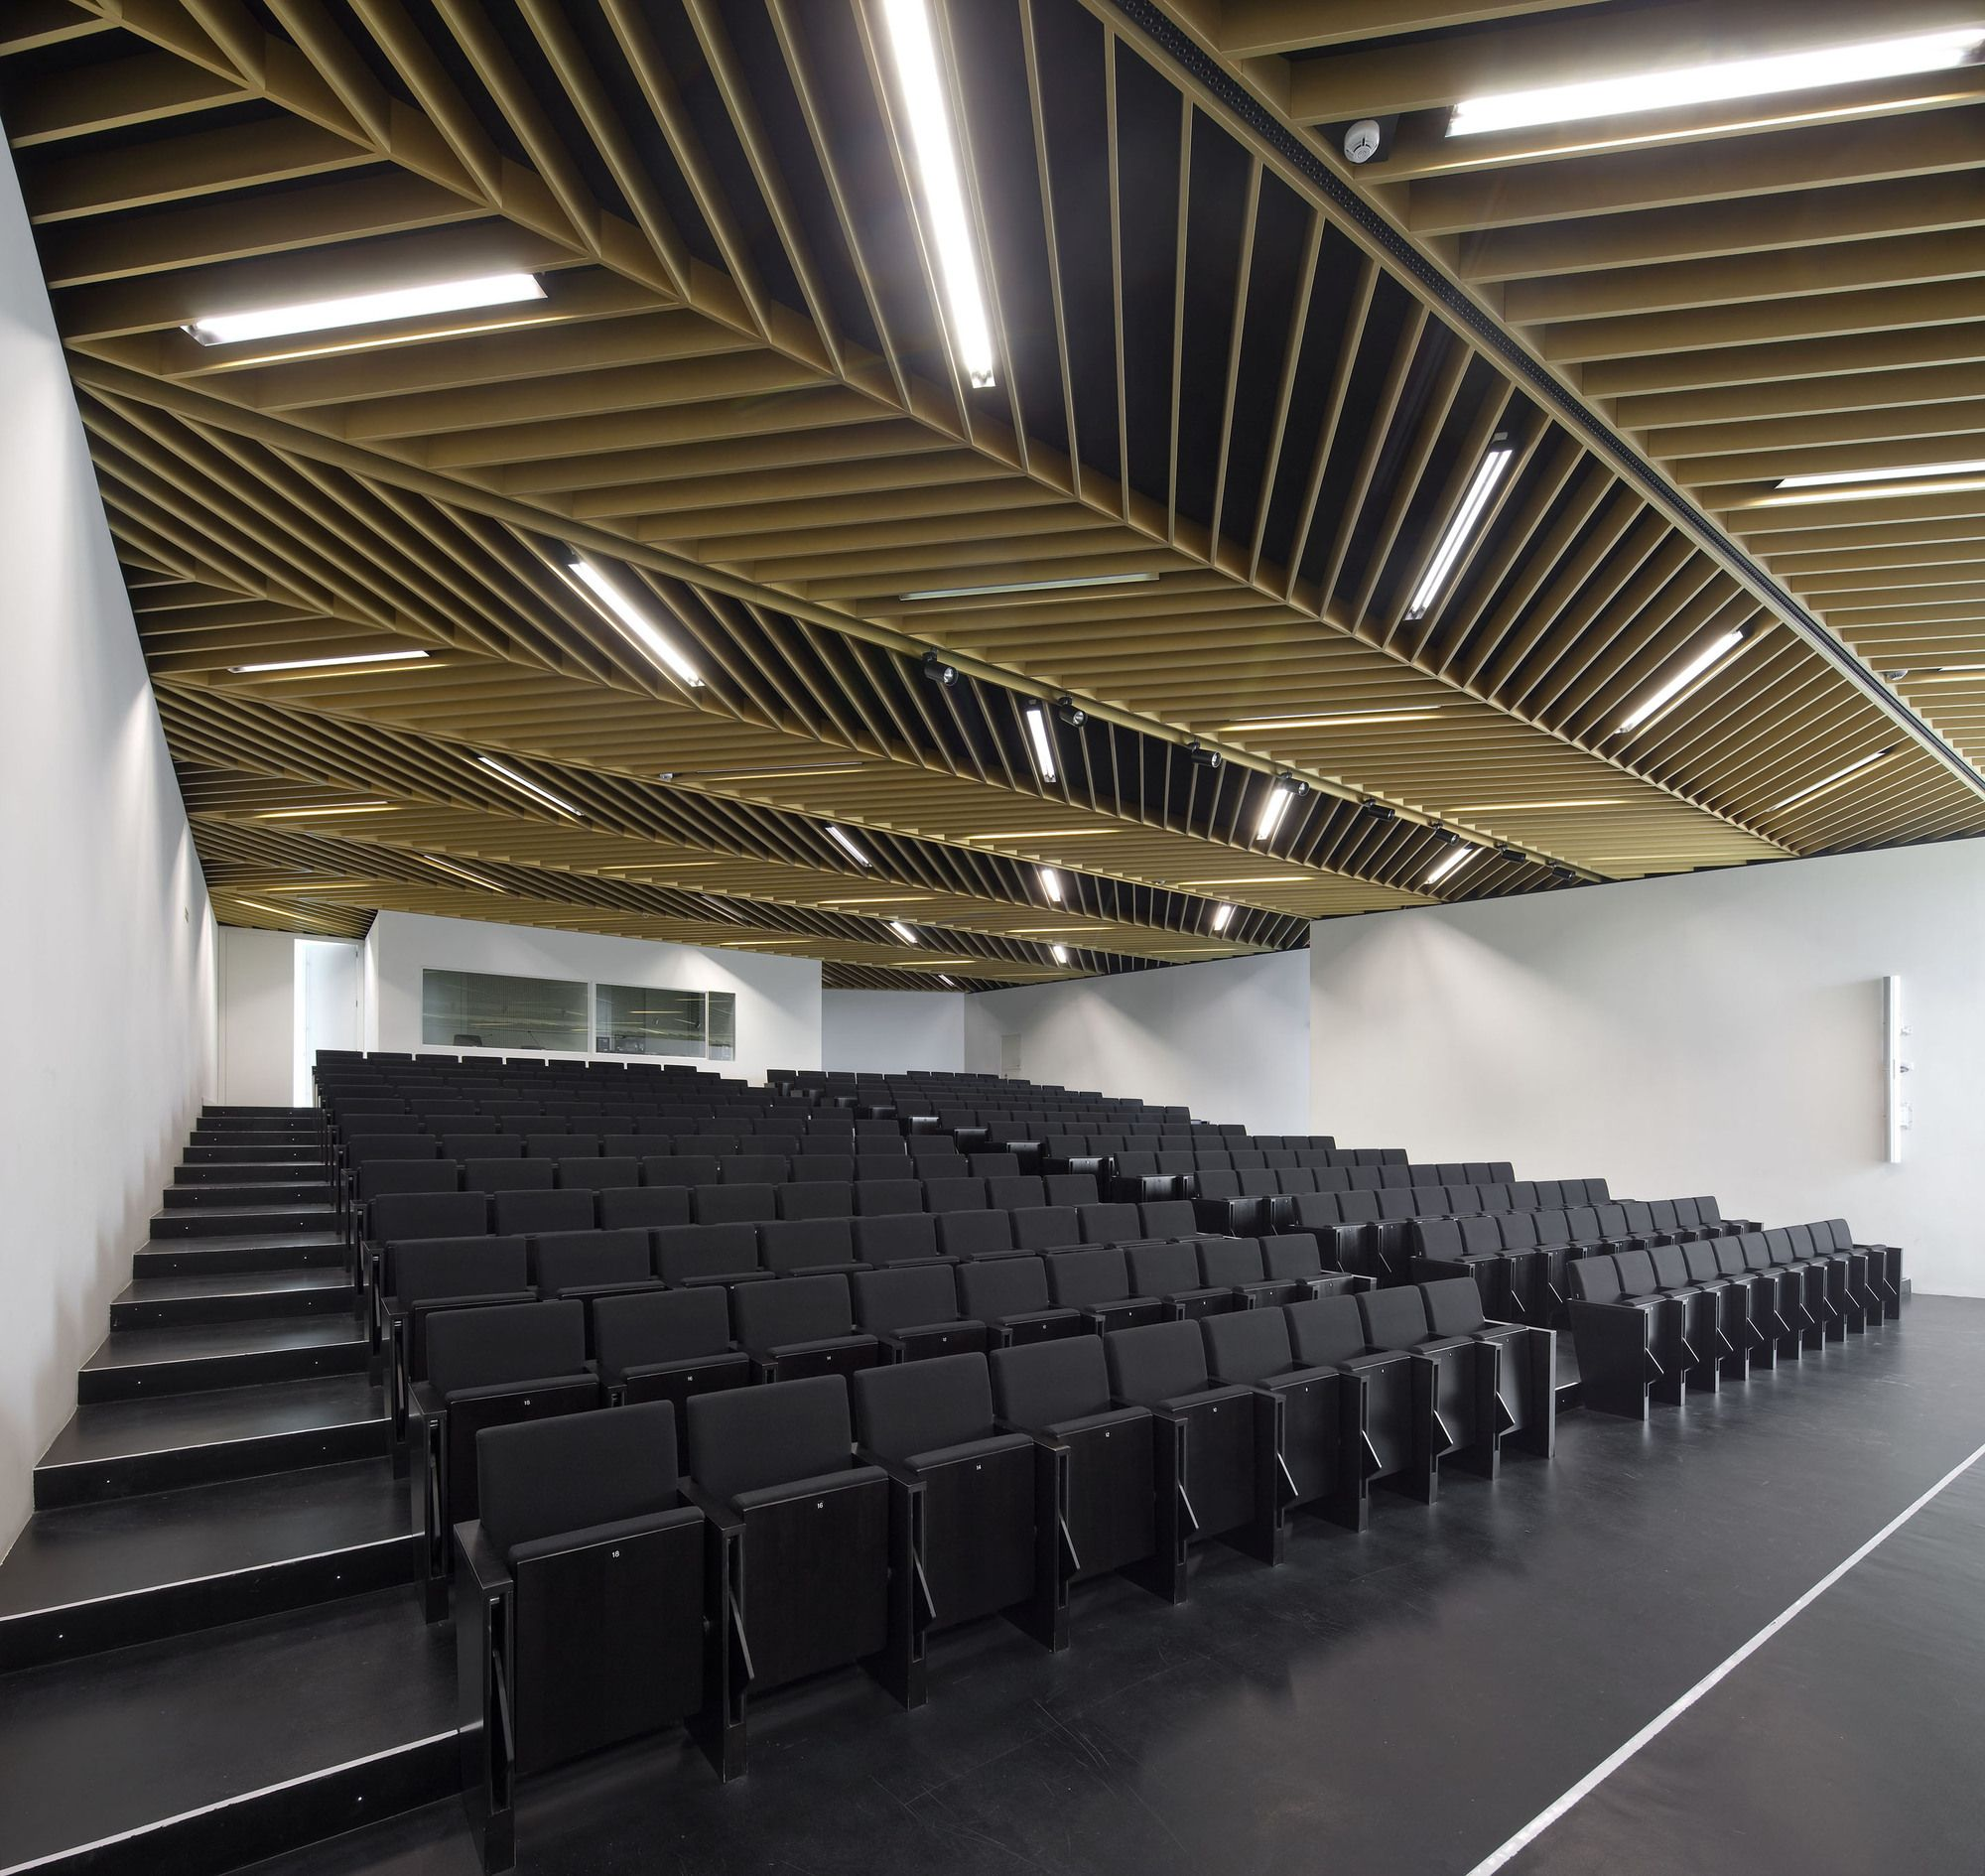 School Auditorium Design Google Search Auditorium Design Hall